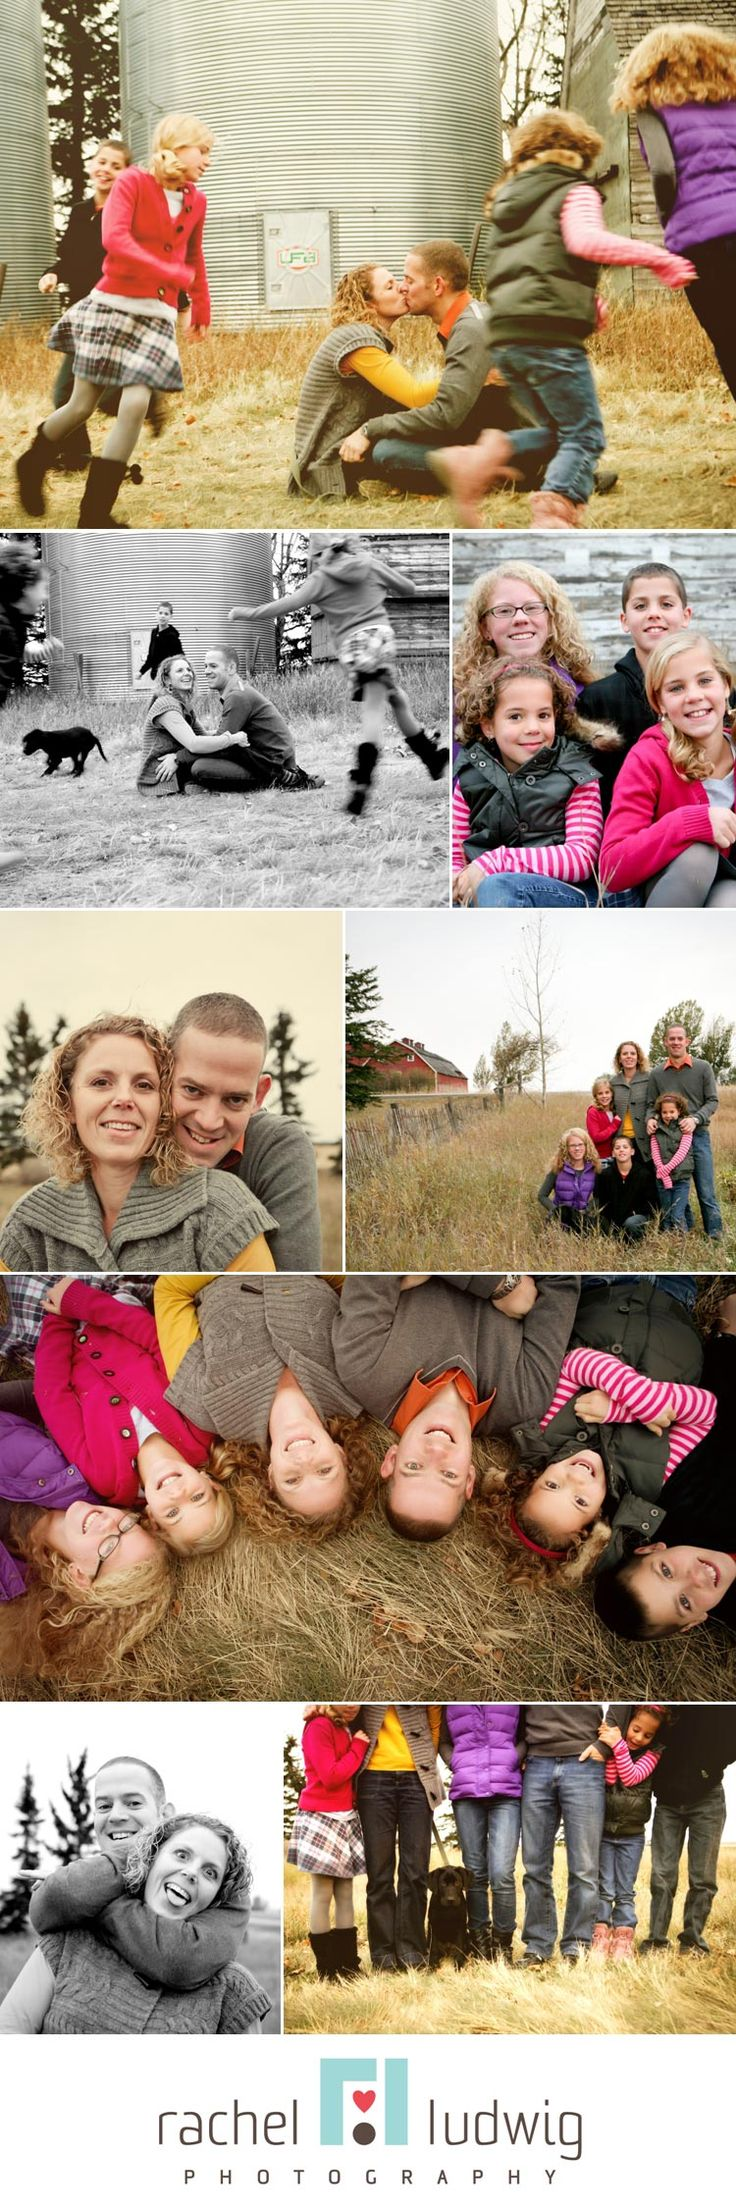 My favorite collection!!!! It's got it all: mix of color and black & white, nature  backdrop with warm grass colors, farm connection, colorful clothing accents, kids in motion, family pet, different perspective shots, playful shots. This grouping has it all covered !!!!